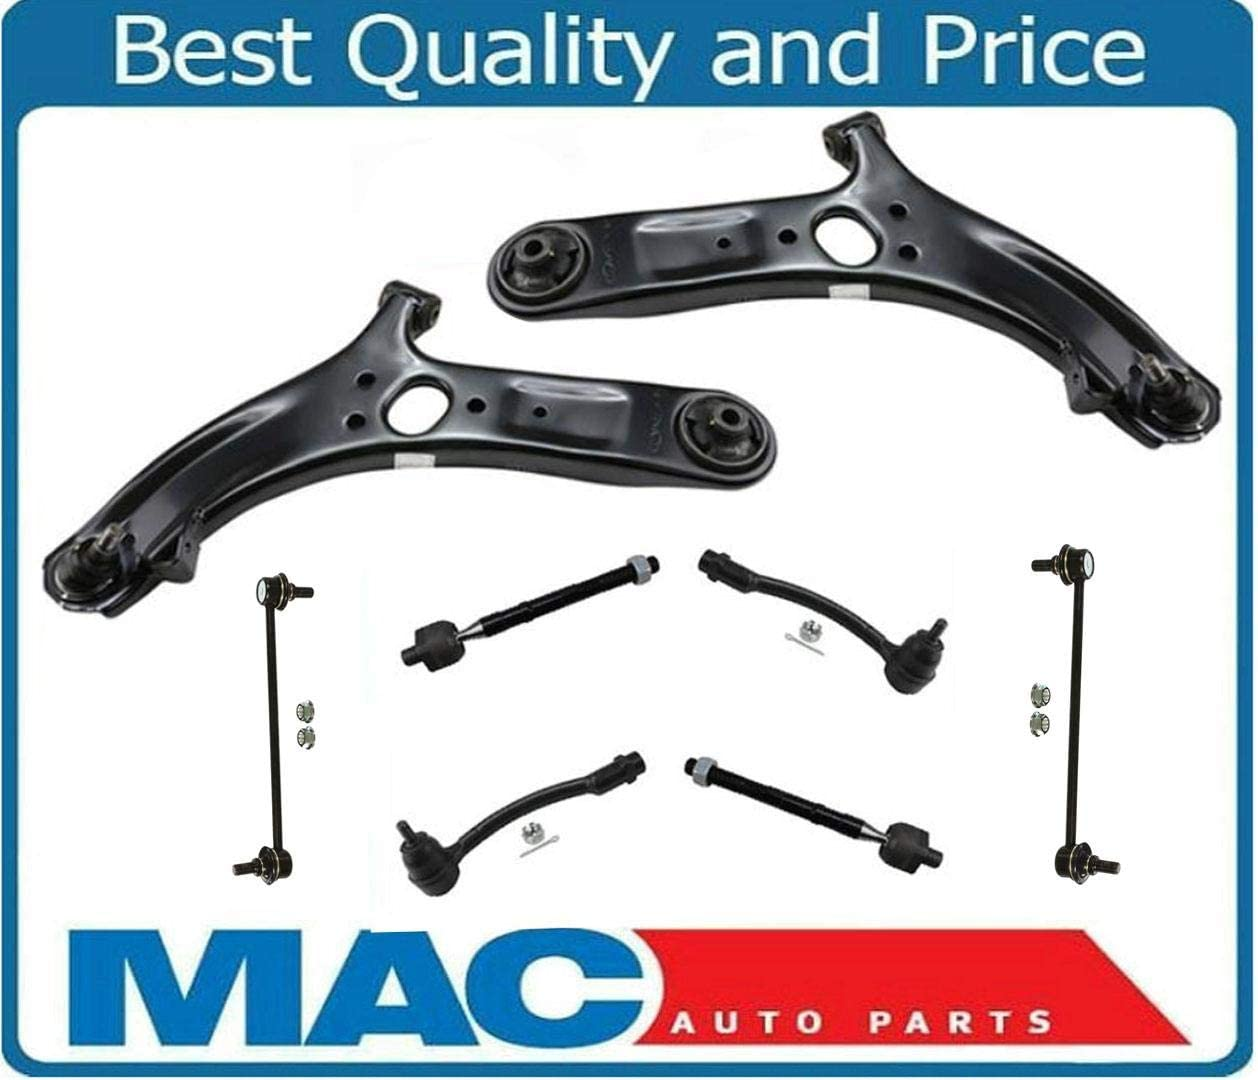 Accent 12-16 Control Arm Ball Joint Tie Rods Sway Bar Link Suspension Kit 8PCS